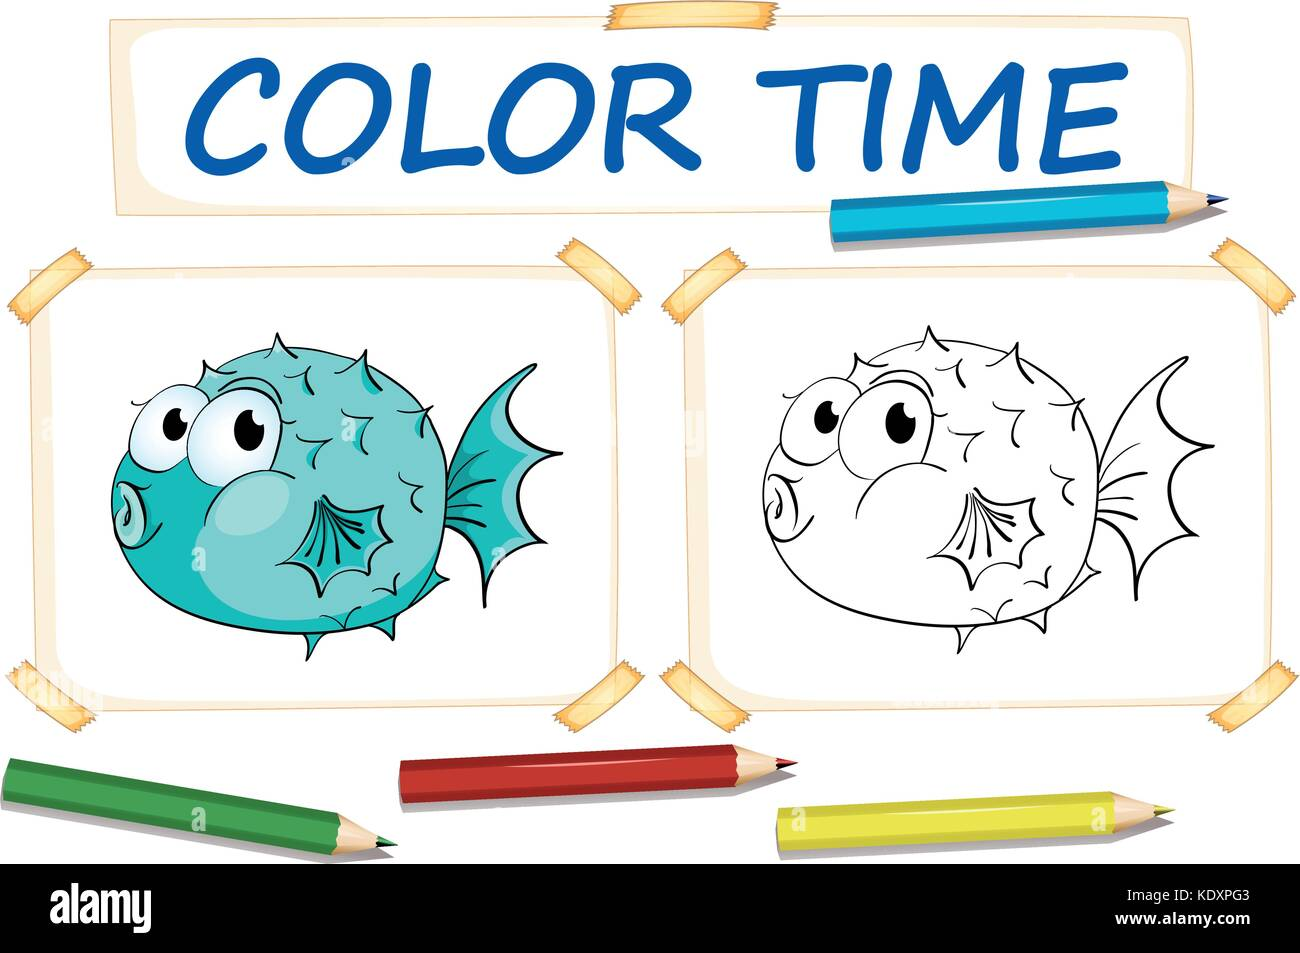 Coloring Template With Puffer Fish Illustration